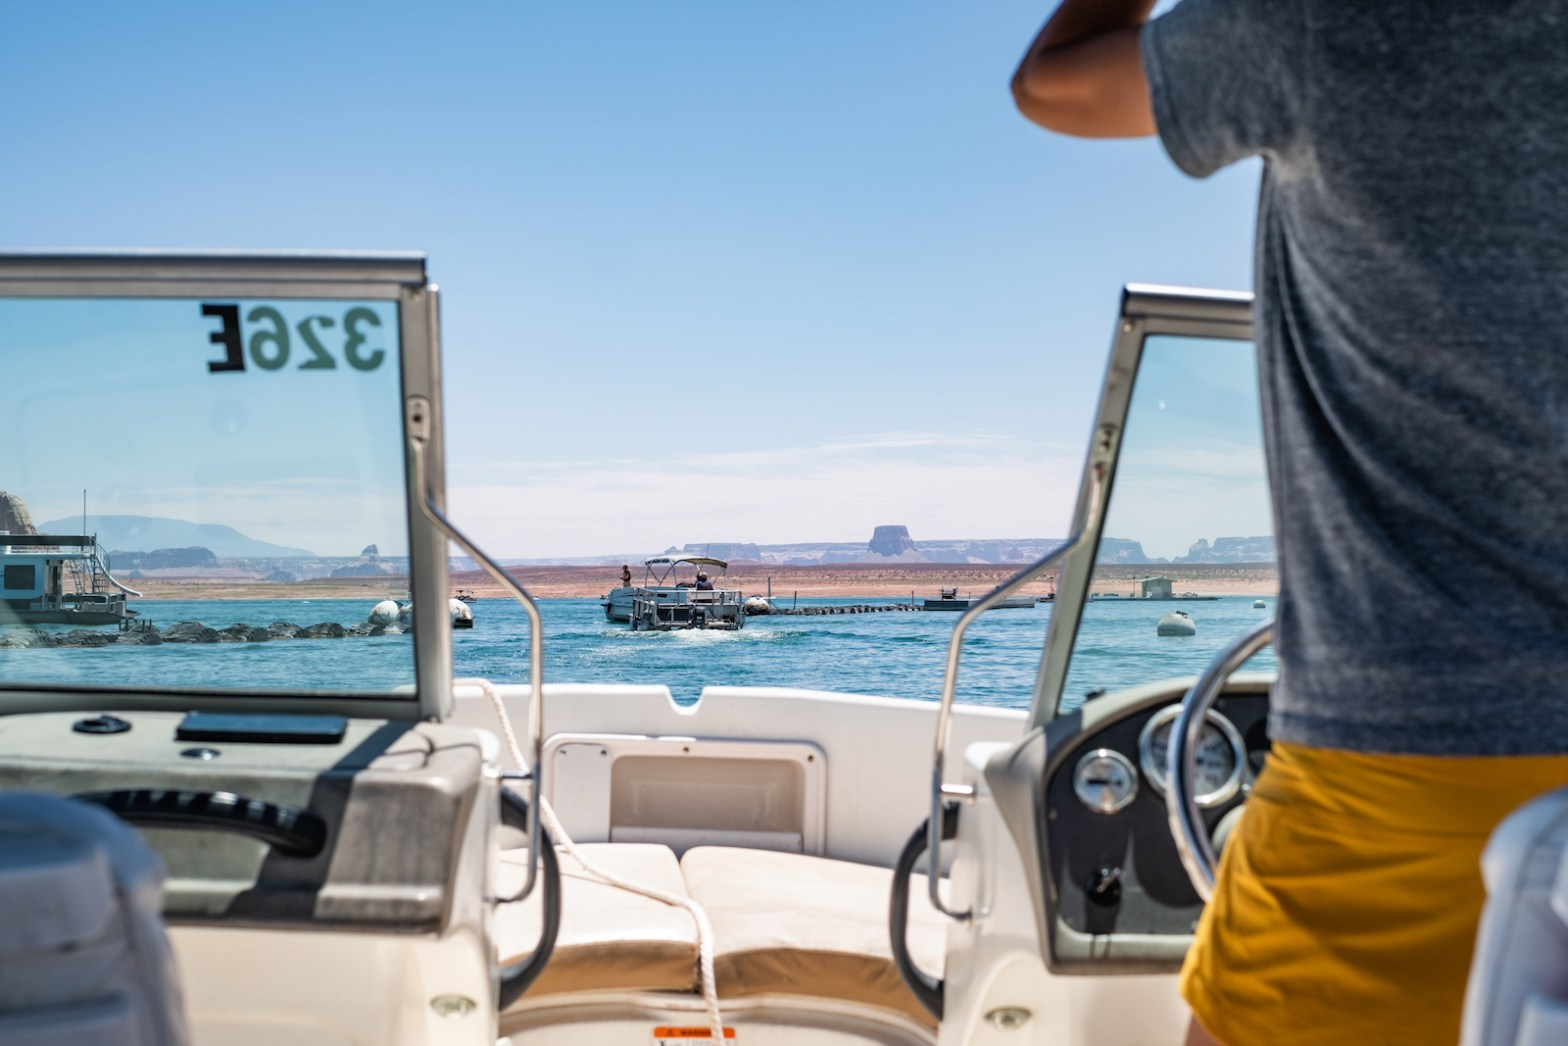 Erin McGrady is standing in a grey shirt and yellow shorts and driving a white powerboat on Lake Powell. A boat is in the distance on the lake.